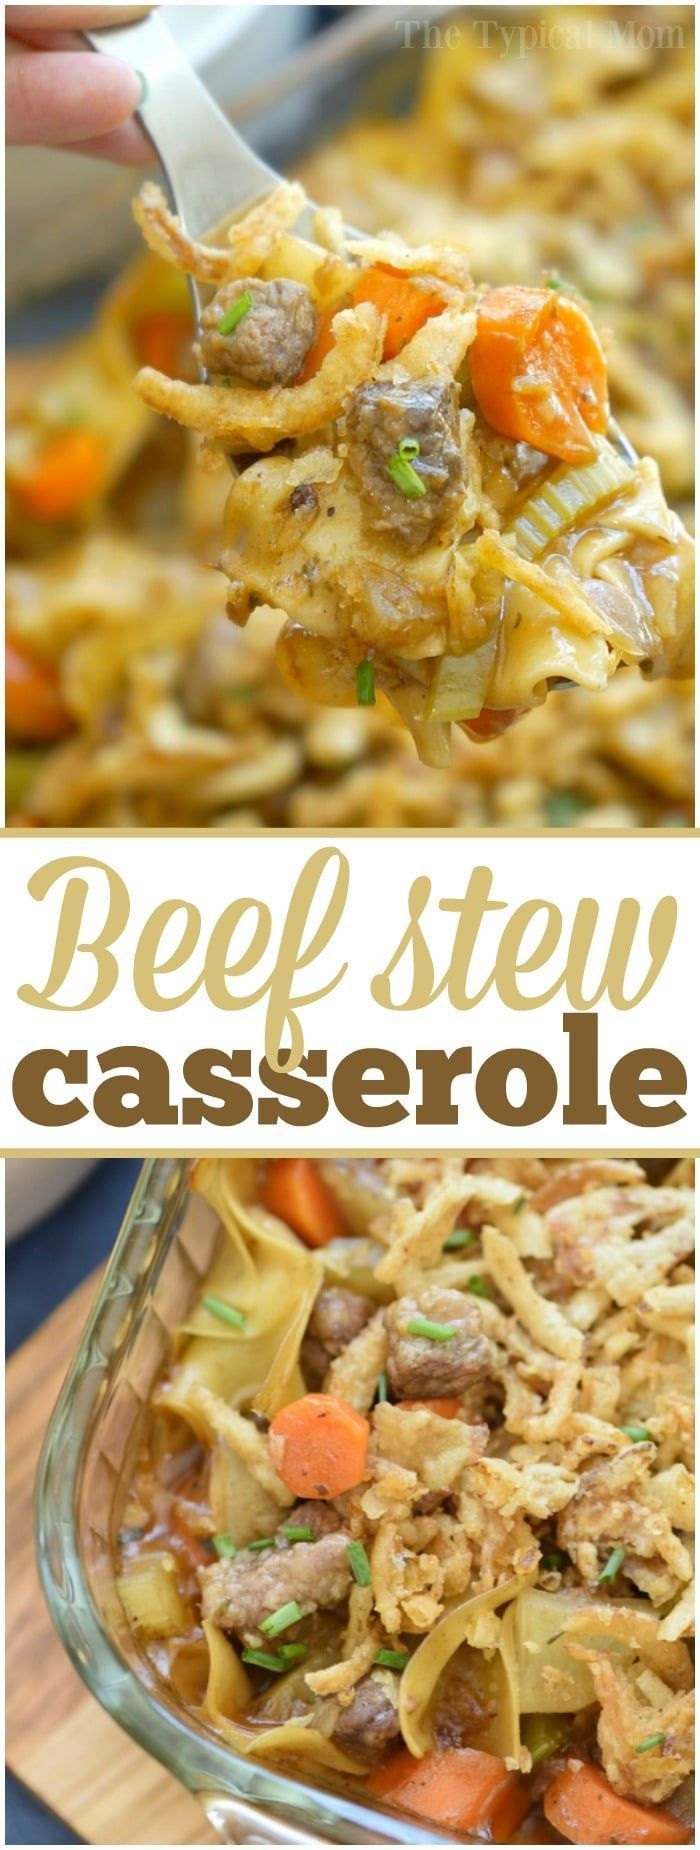 This easy beef stew casserole is comfort food at it's finest!! Packed with tender meat lots of vegetables and a thick sauce you're sure to have seconds! via @thetypicalmom